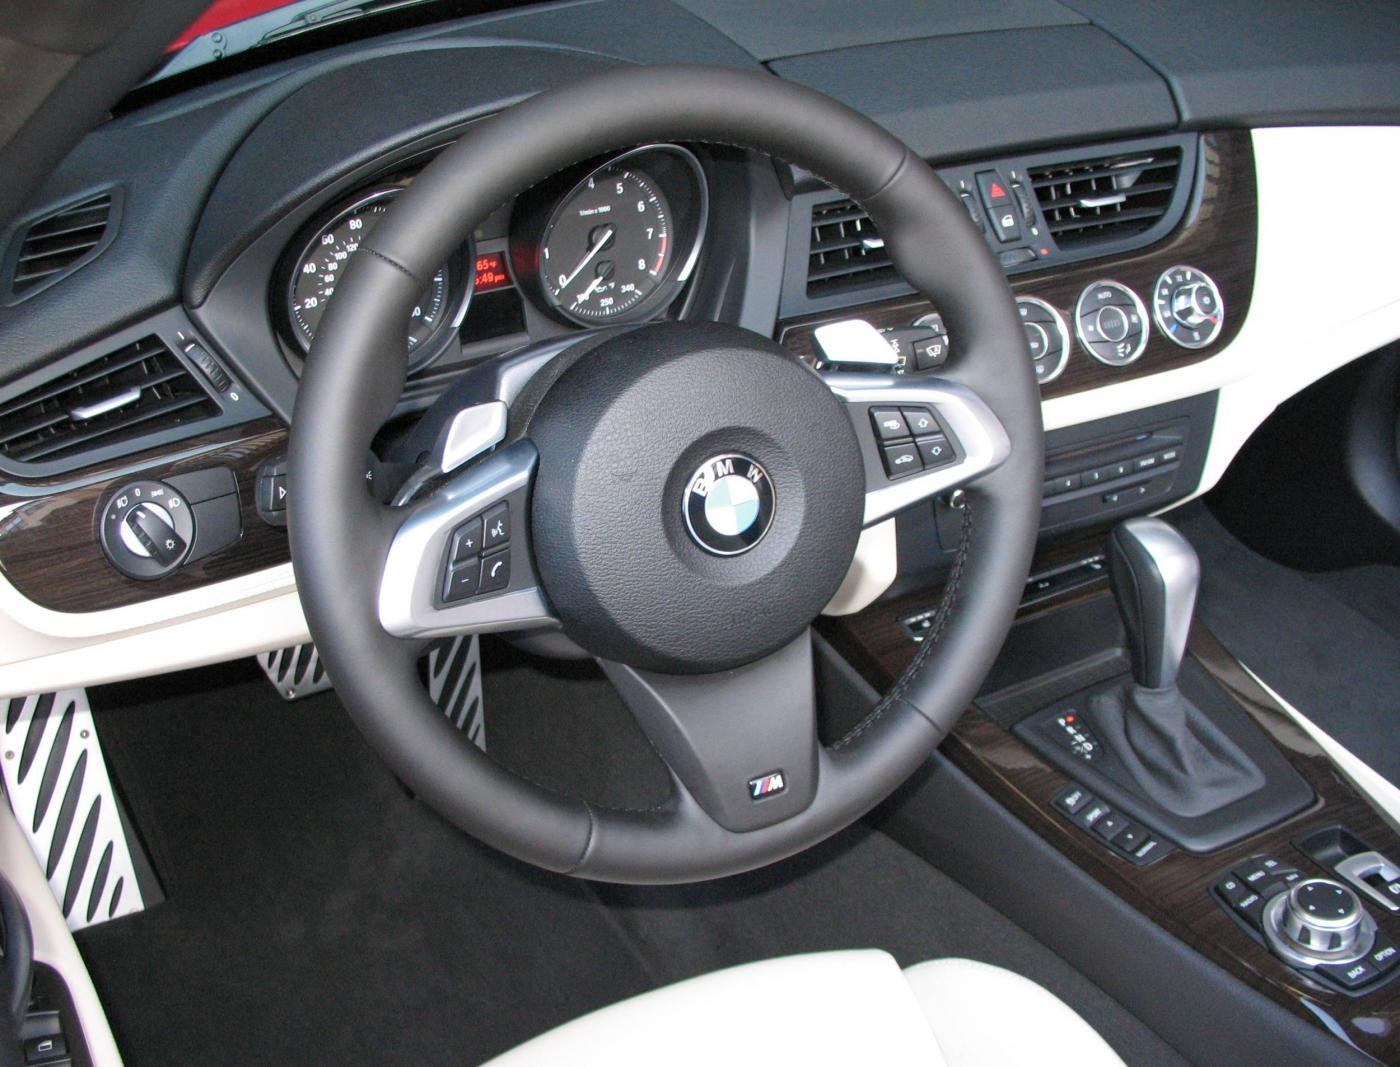 Swapped Out Sport Automatic Steering Wheel For M Sport Wheel